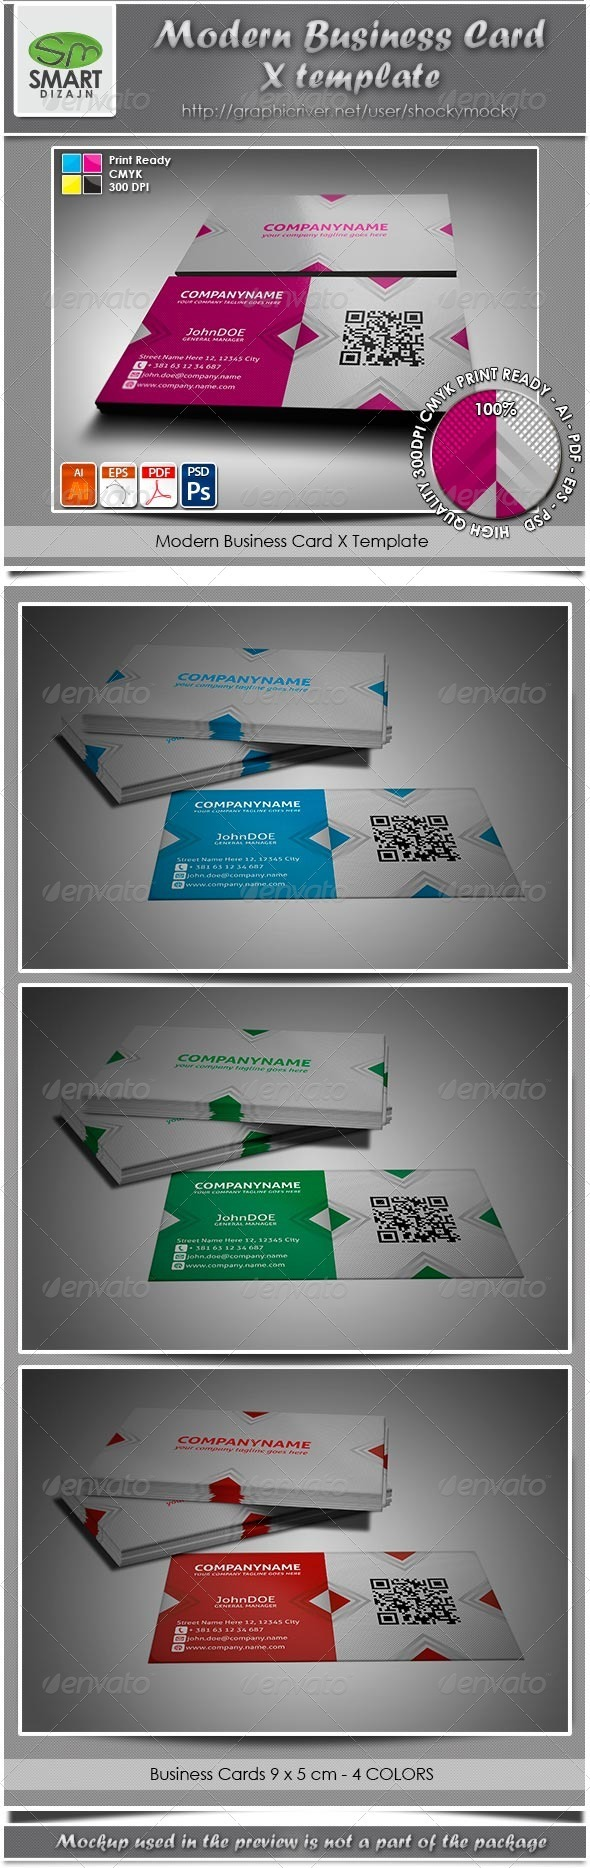 Modern Business Card X Template - Creative Business Cards